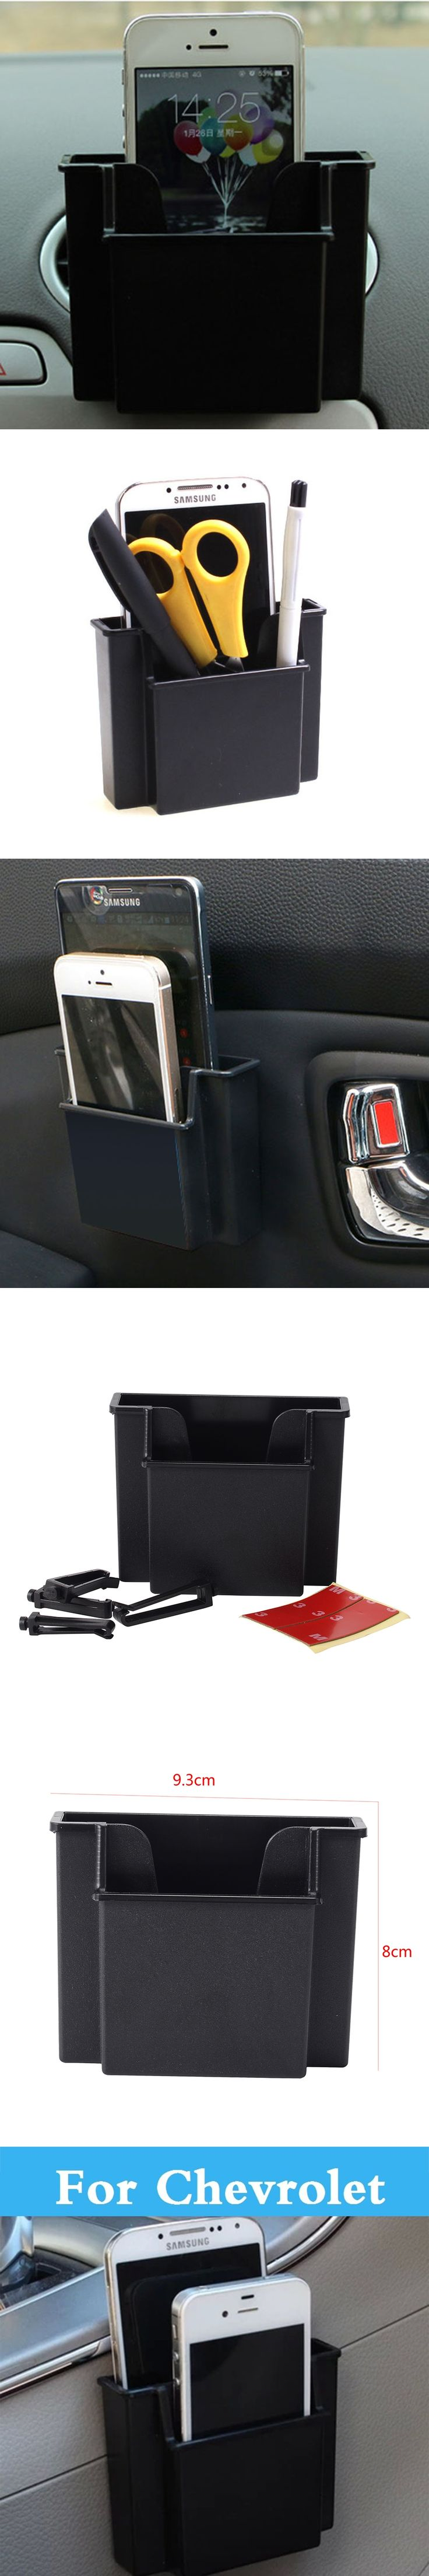 Car Phone Holder Storage Box Holder Orangizer For Chevrolet Aveo Blazer Camaro Cavalier Celta Classic Cobalt Caprice Captiva